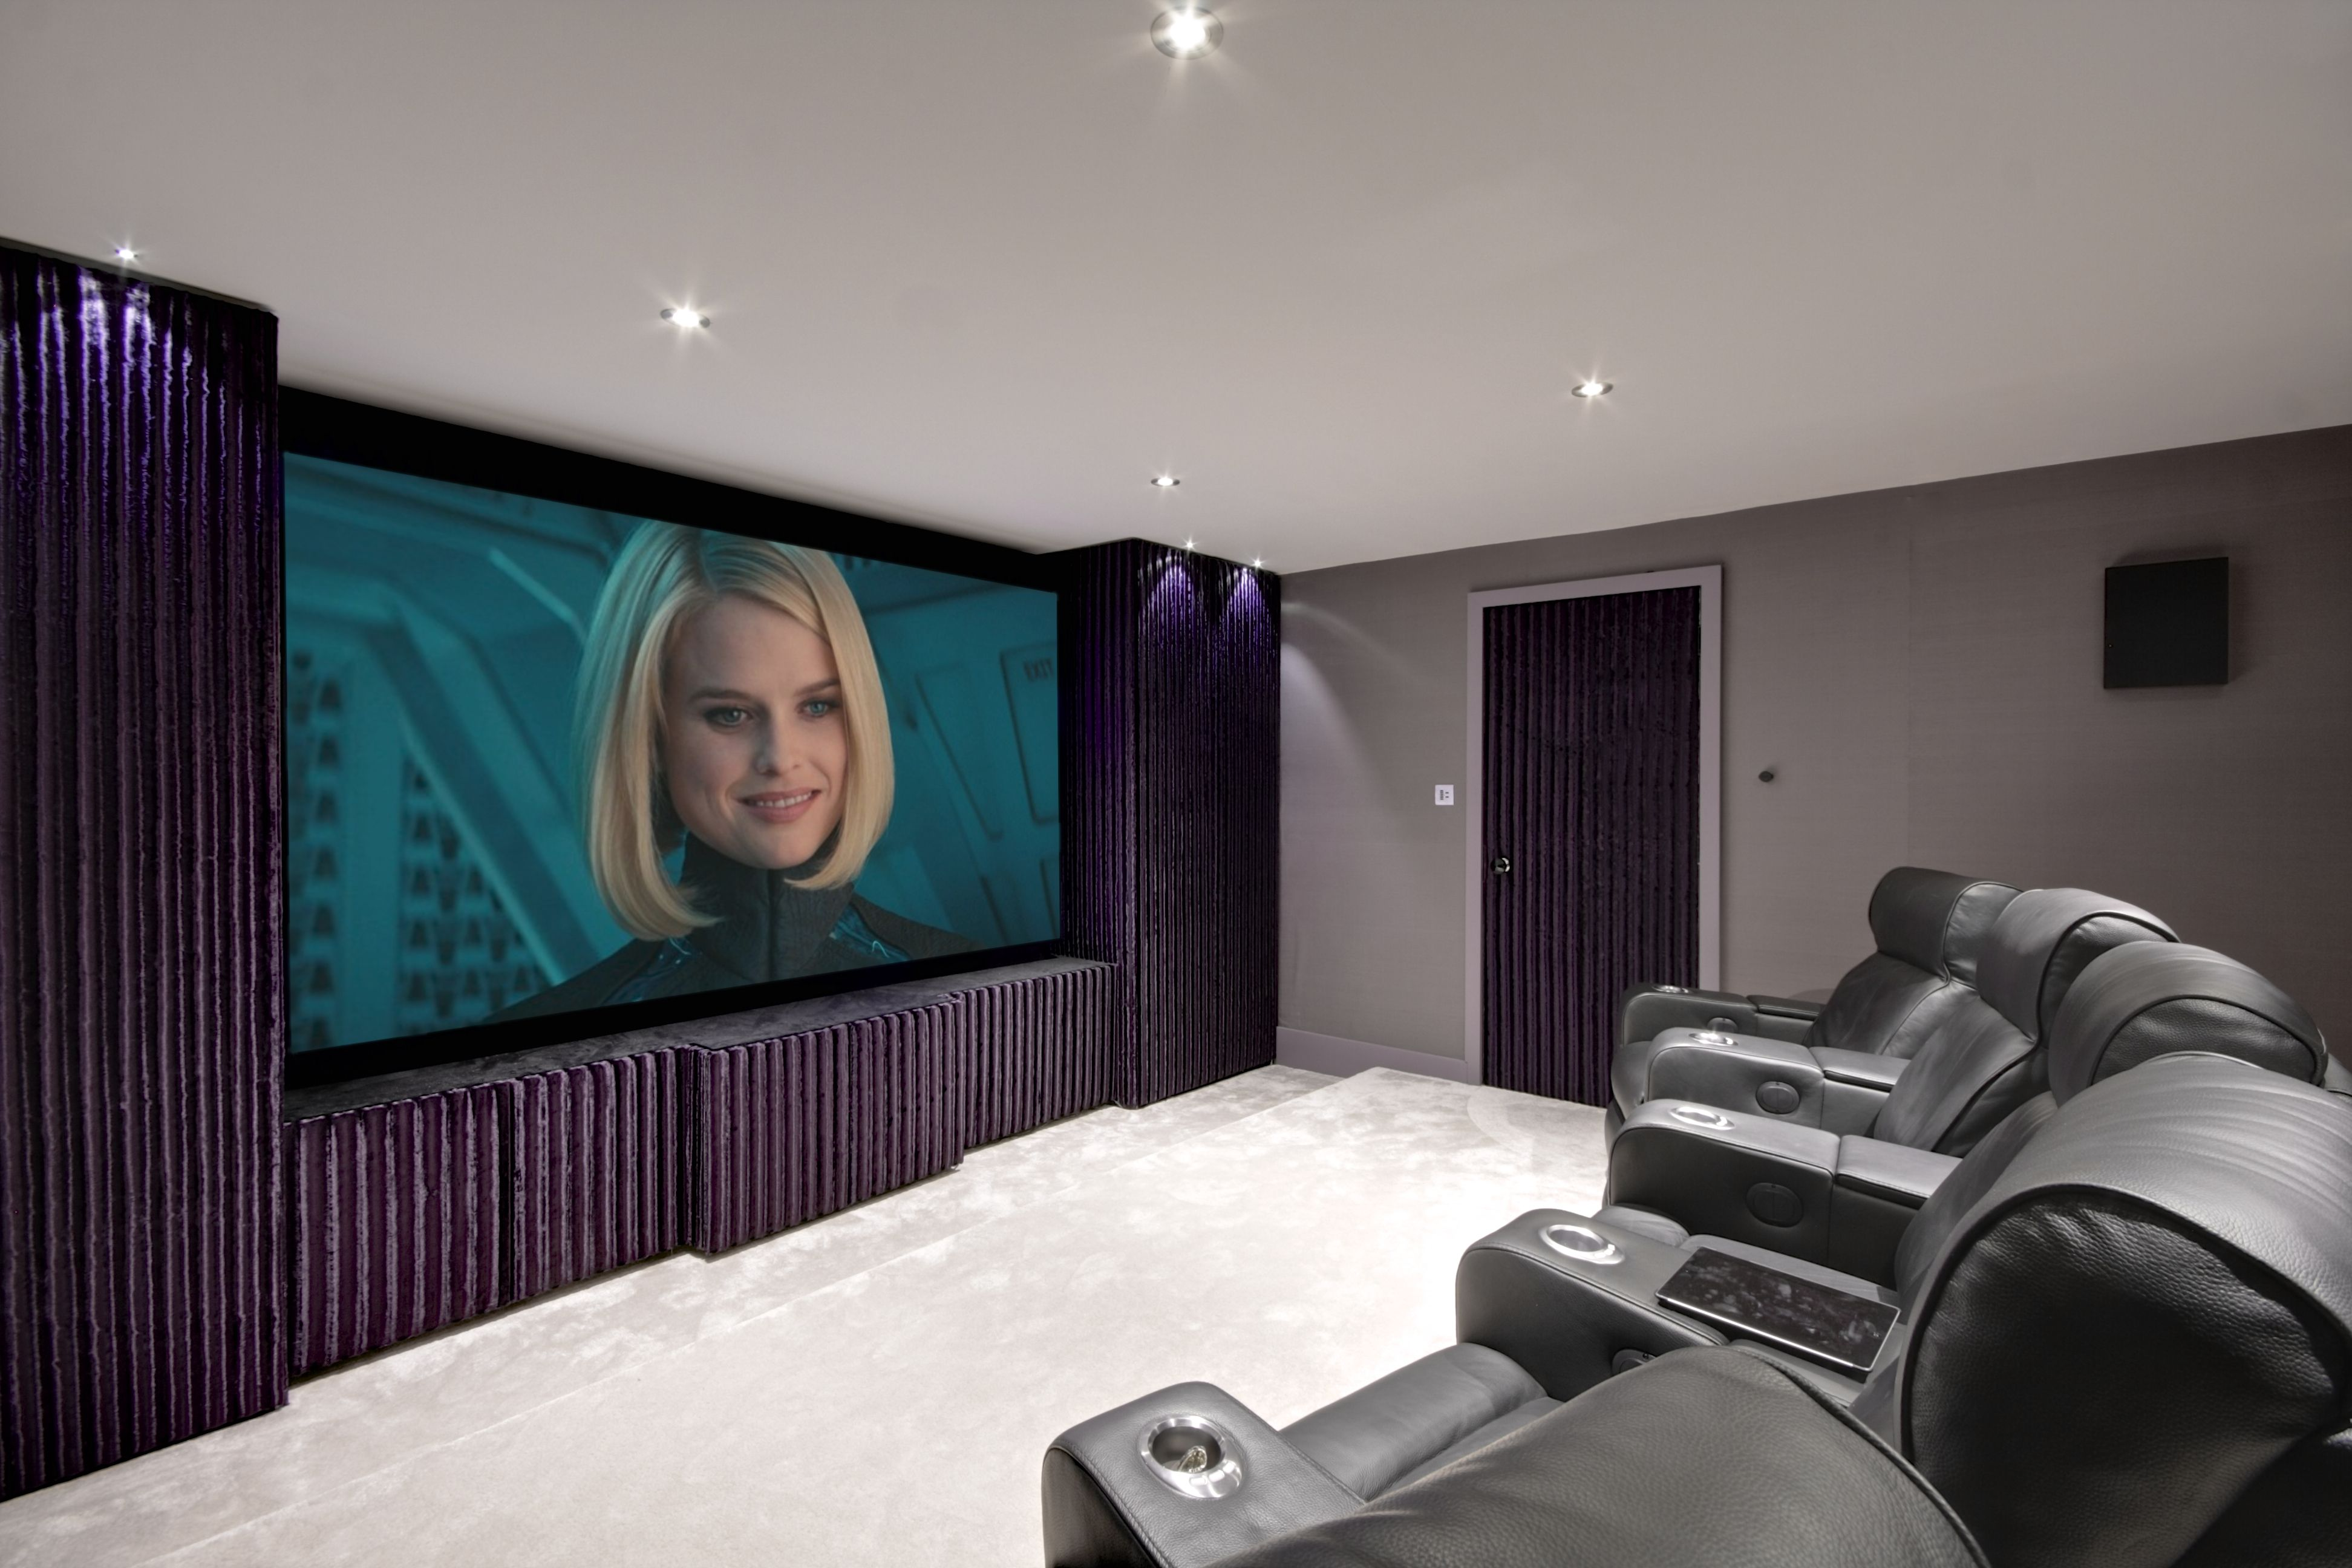 Home Cinema Garage Conversion Home Theater Installation Home